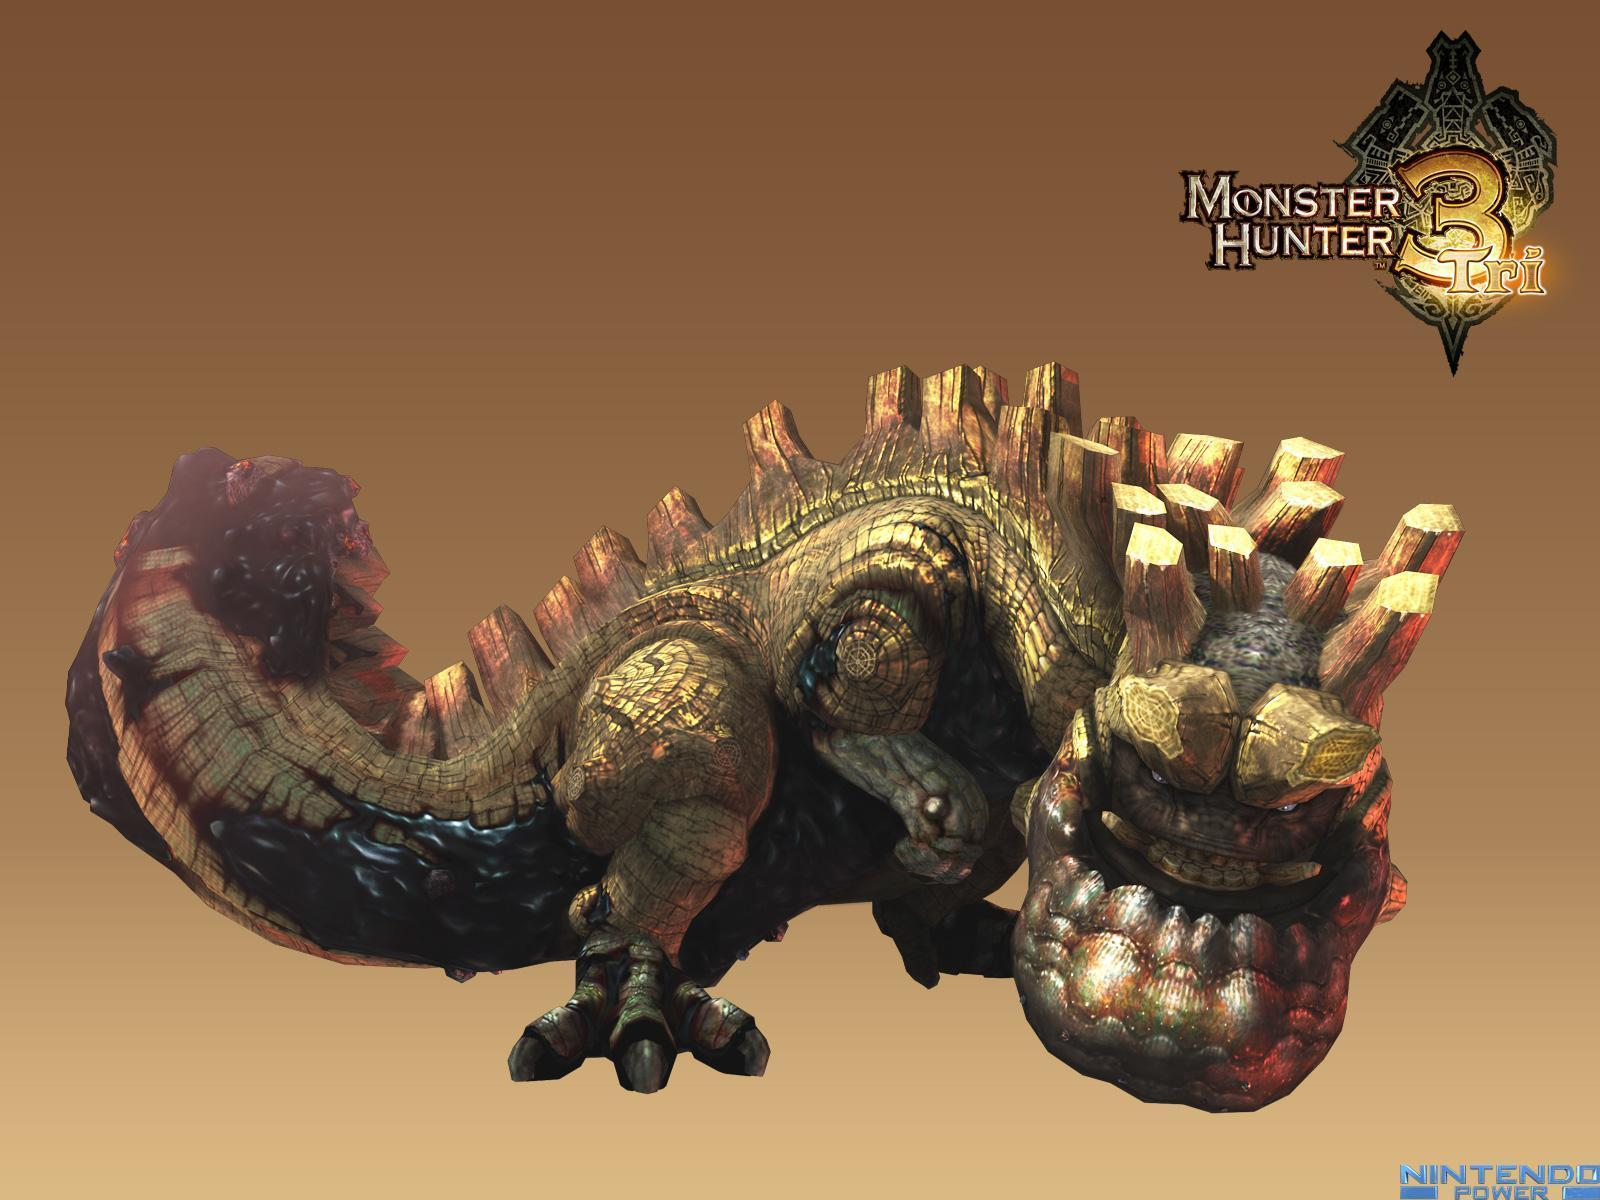 Monster hunter 3 nackt nackt streaming